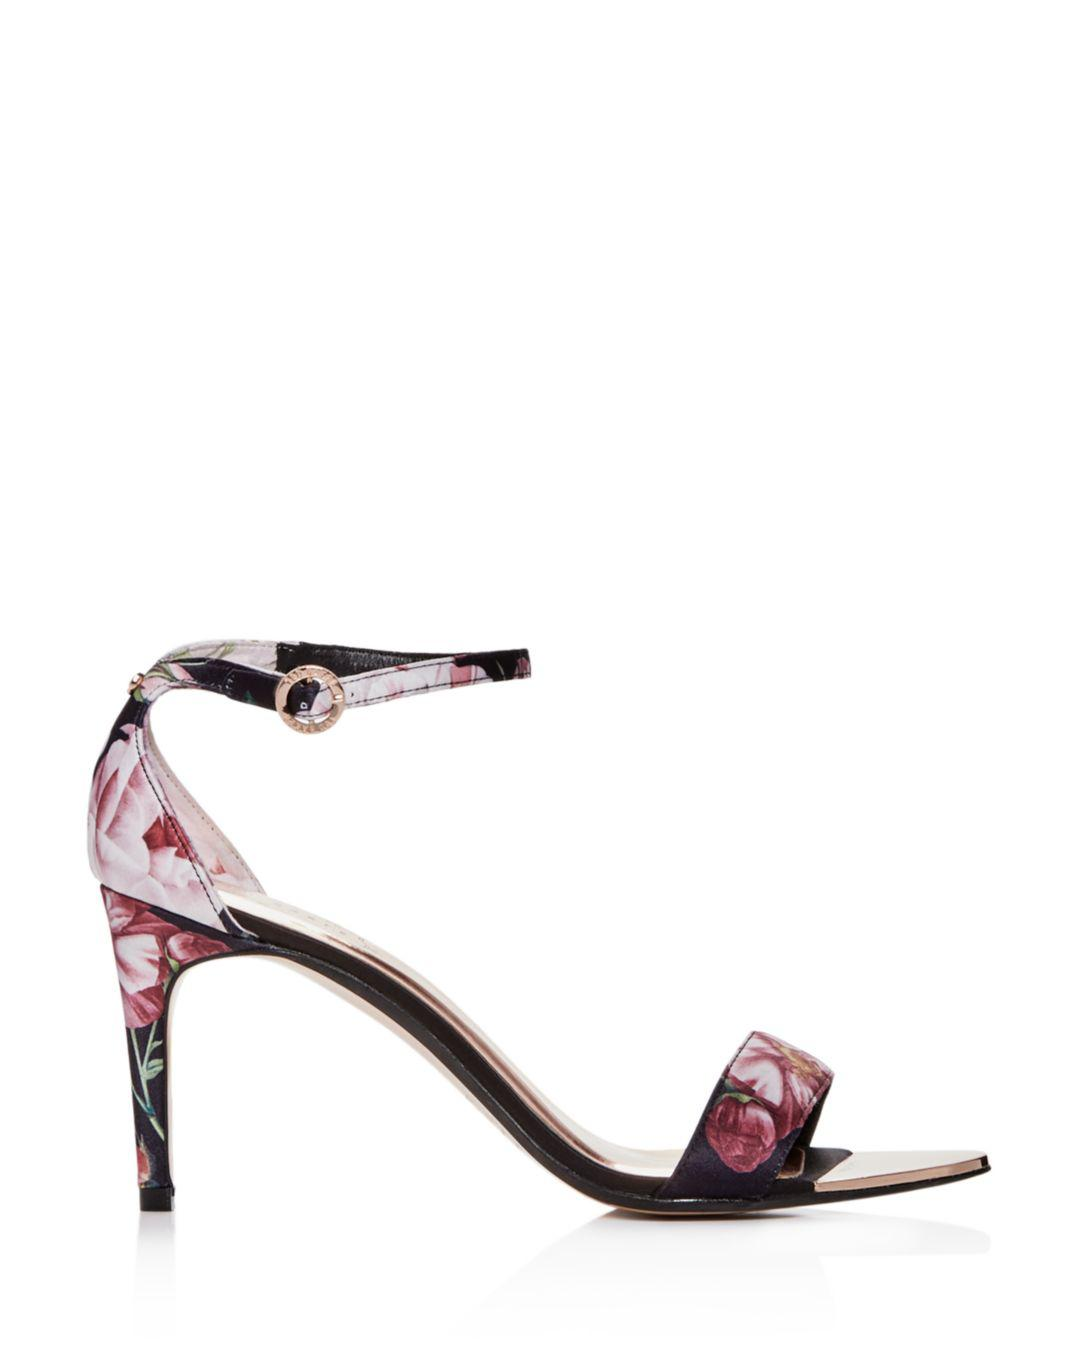 abdea3eef3d Lyst - Ted Baker Women s Mylli Floral Satin Ankle Strap High-heel ...